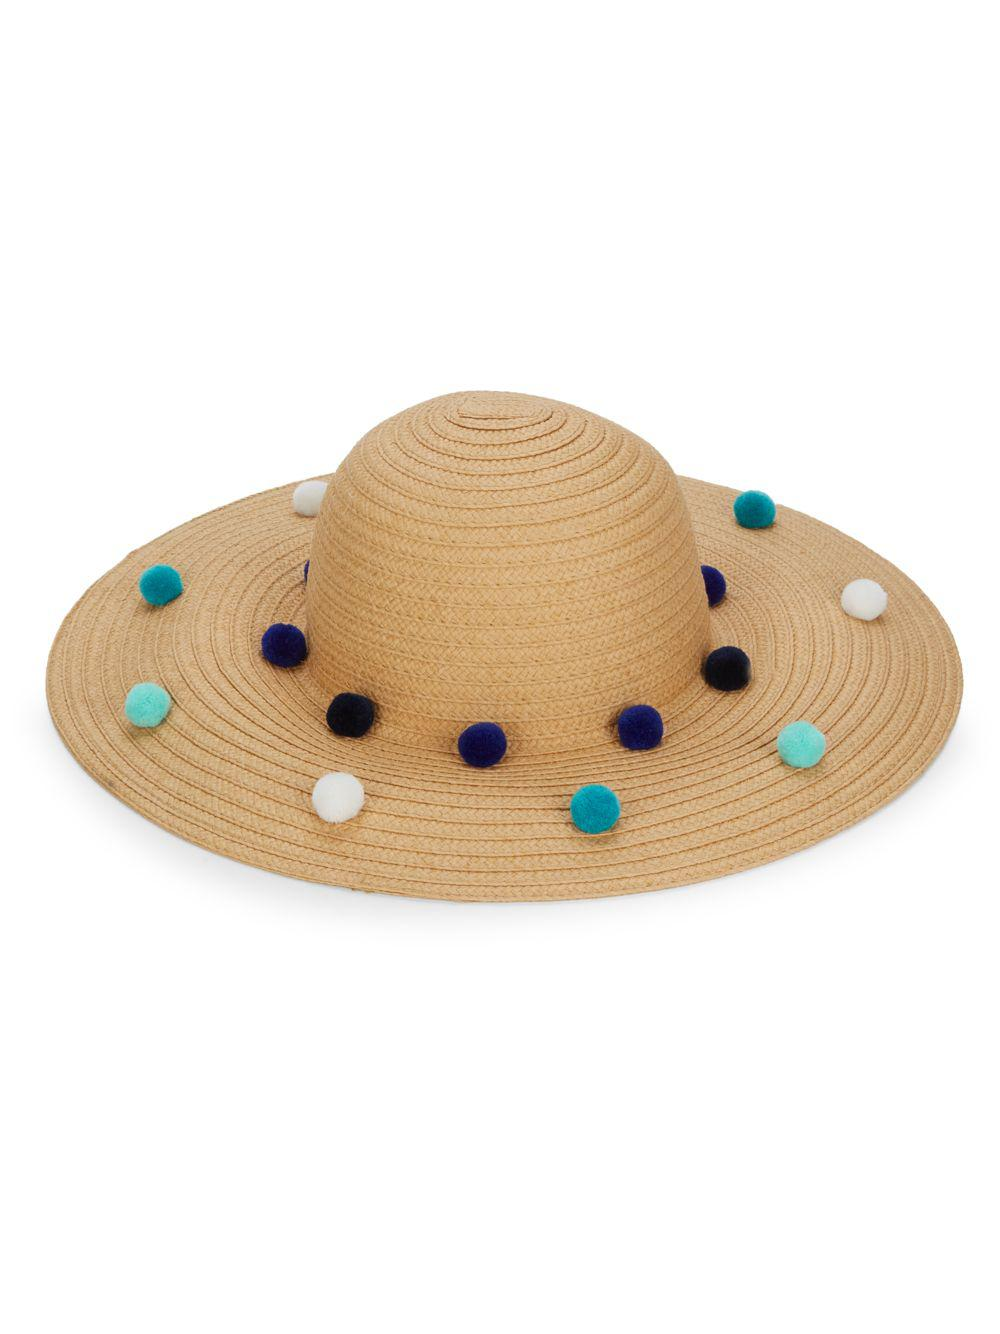 93fb445fa74 ... Bcbgeneration Funfetti Pom-pom Sun Hat in Natural - Lyst official  images 08a7b 796fa ...